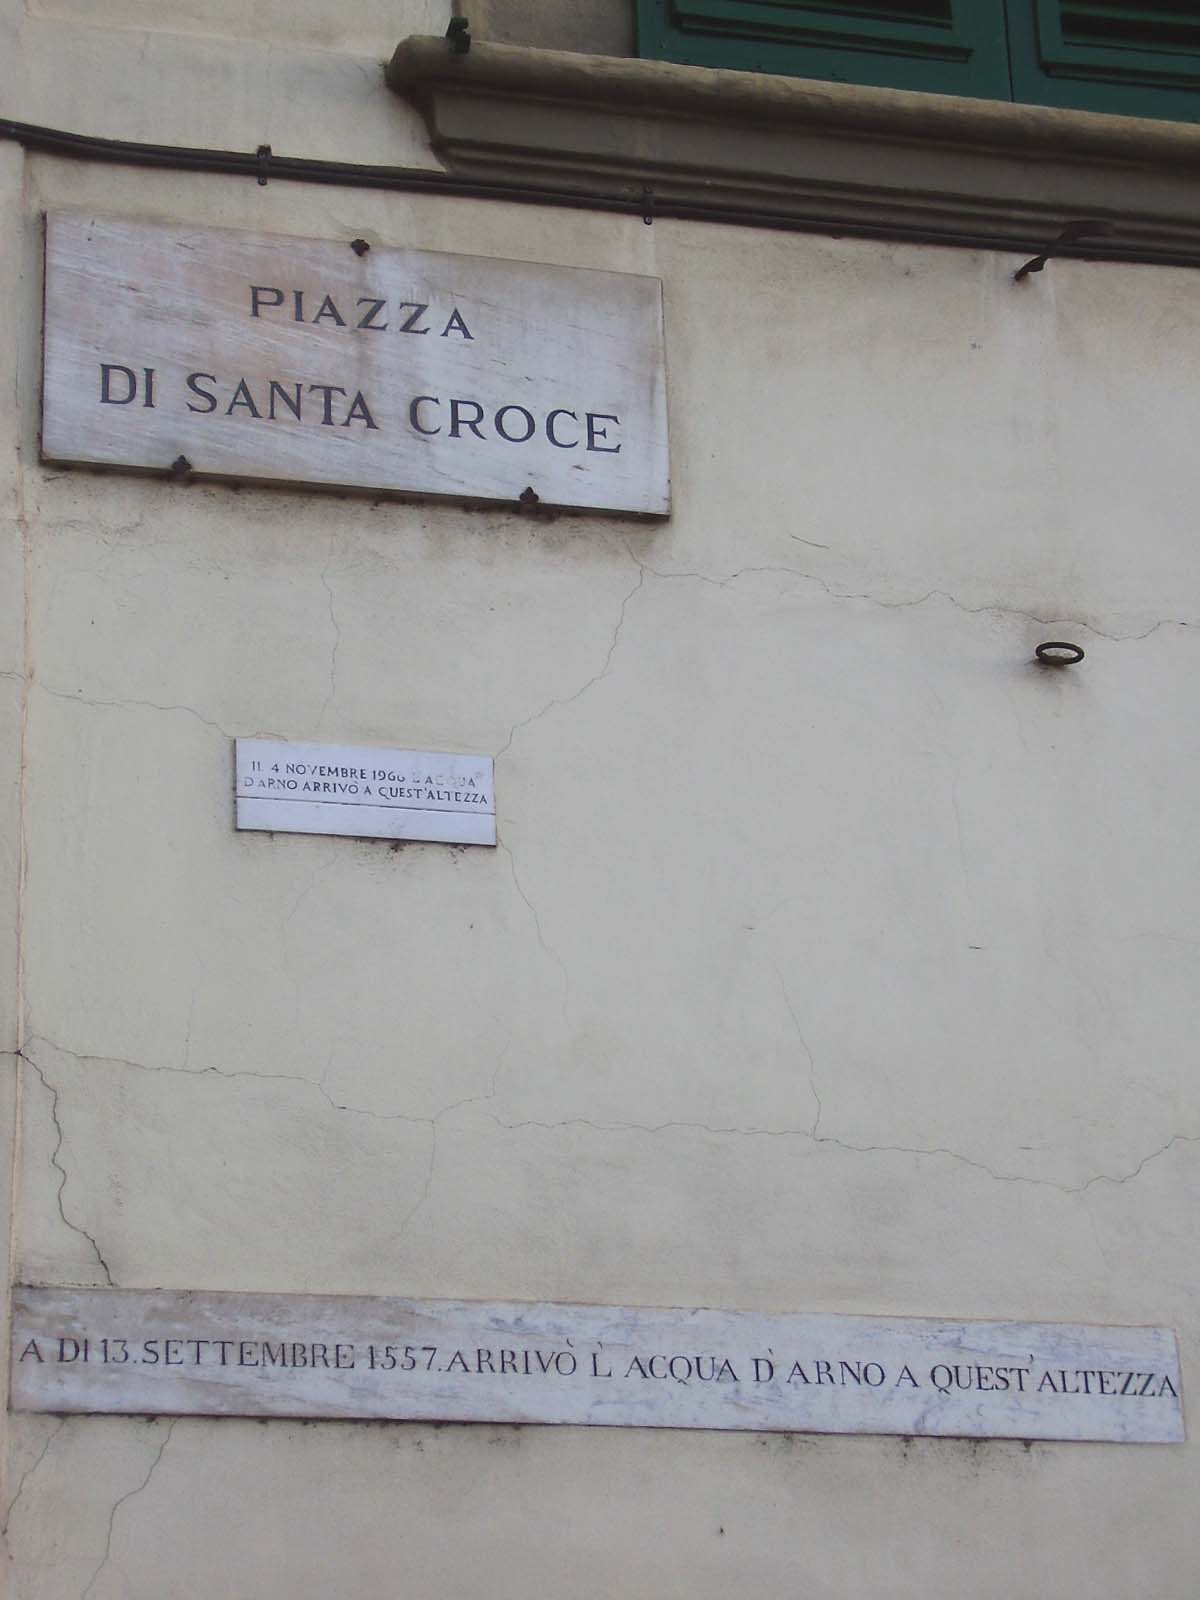 Plate of the flood in Santa Croce